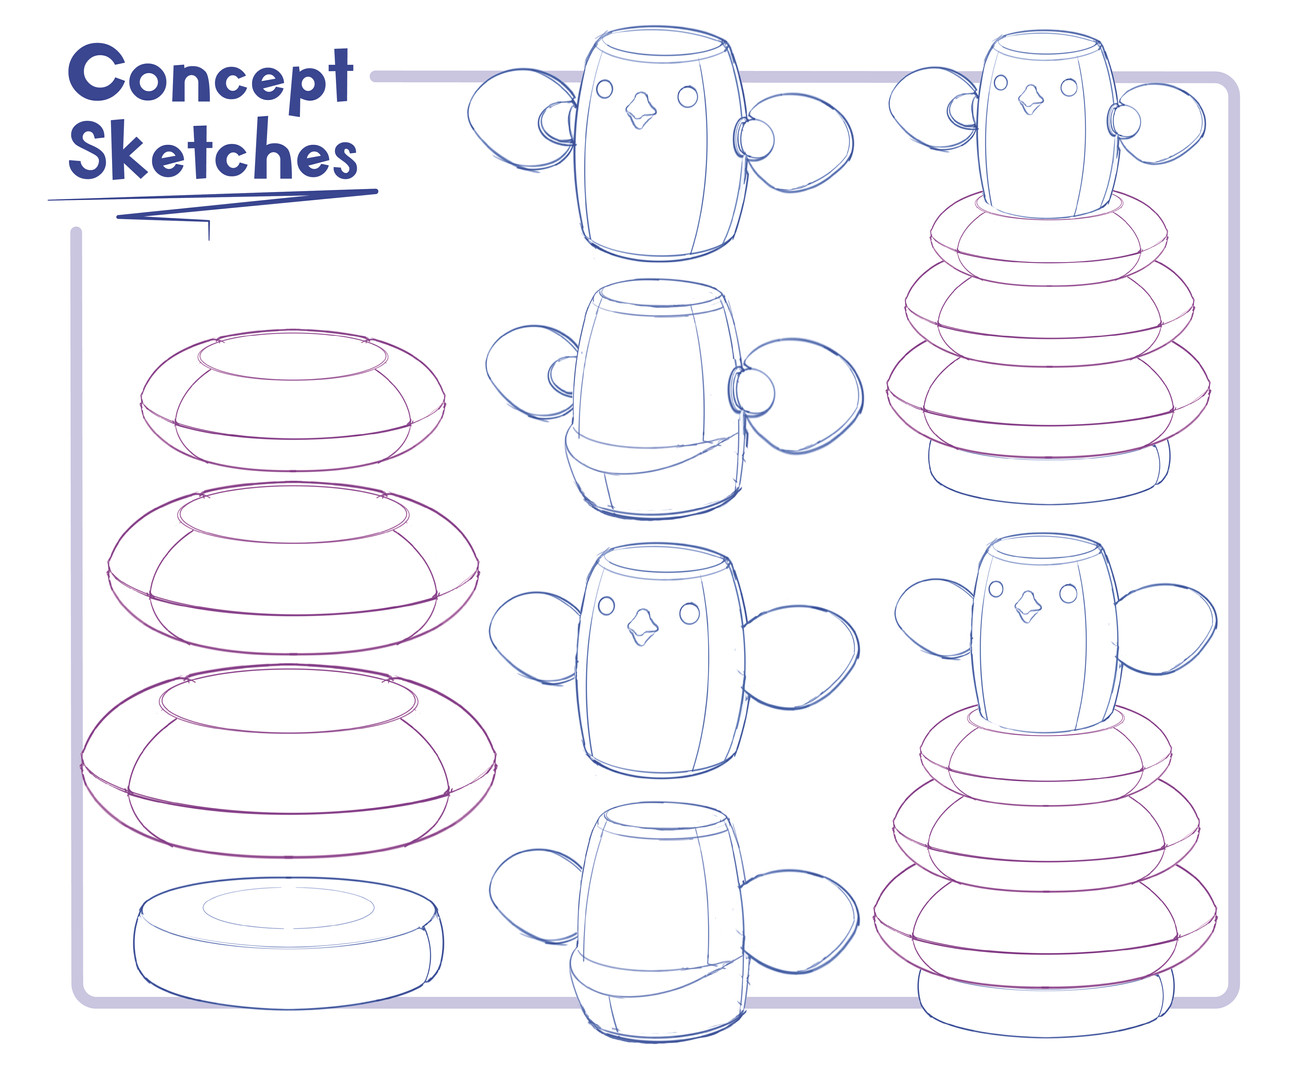 Chickpeas concept boards ideation sketch